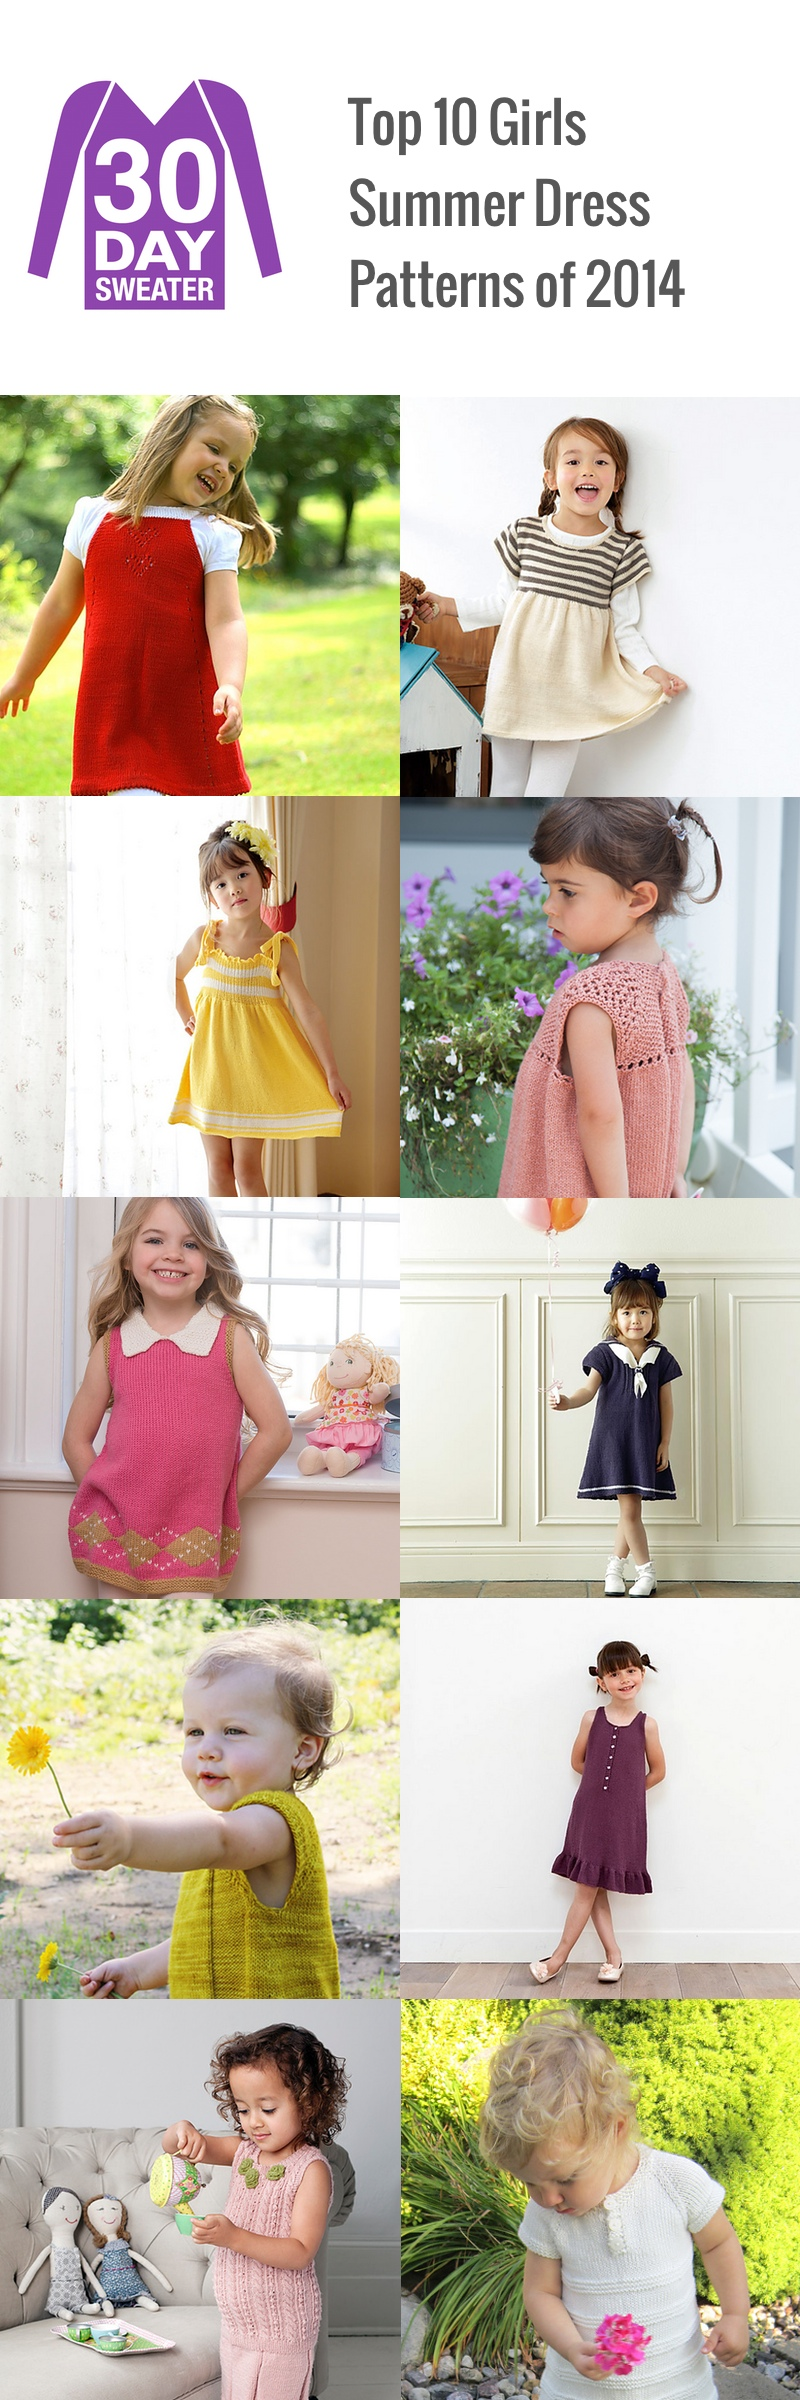 top10girlssummerdresses